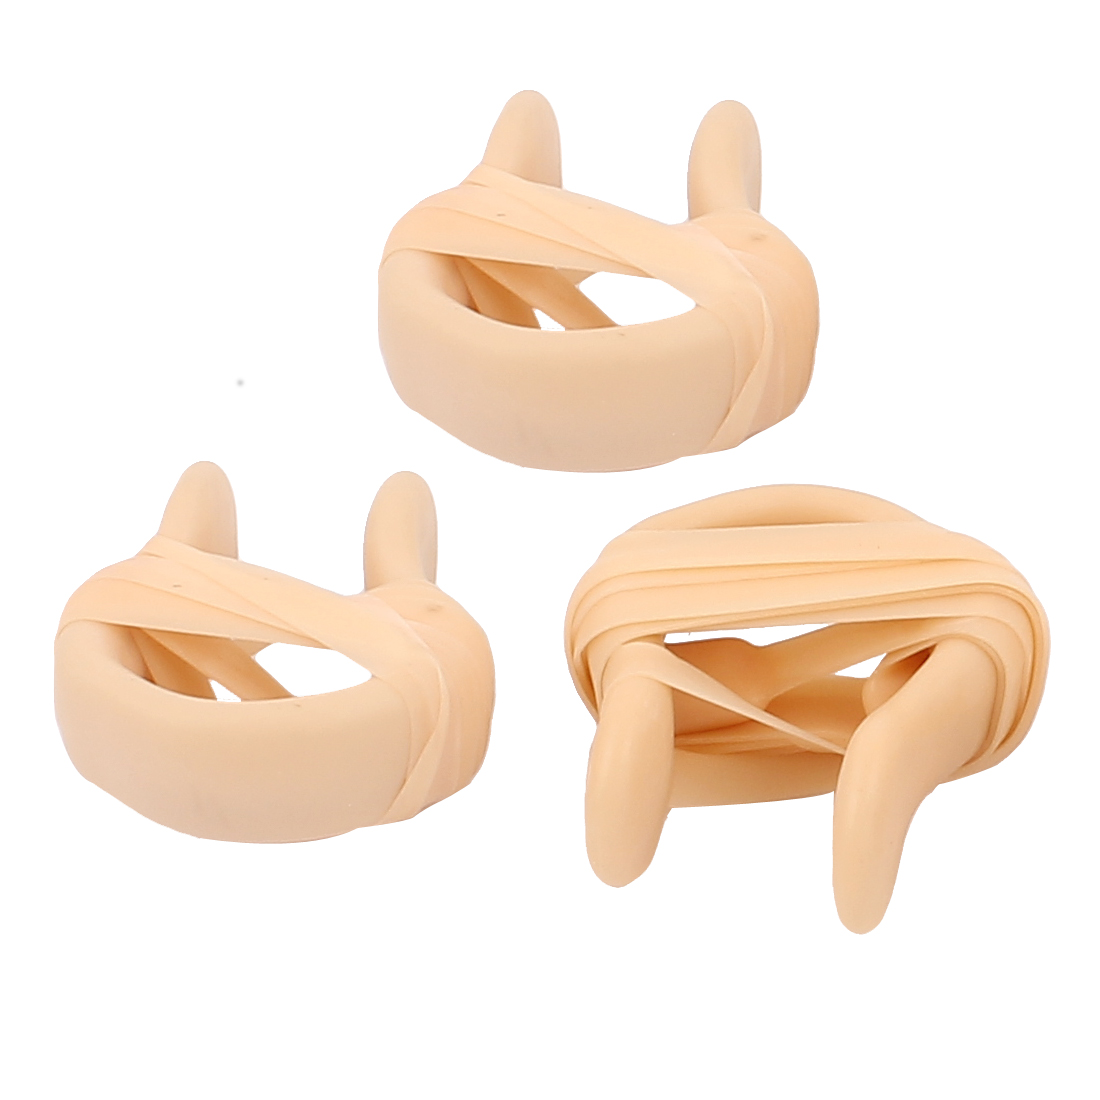 Swimming Safeguard Diving Guard Tool Plastic Nose Clips Protector Beige 3pcs - image 2 of 2